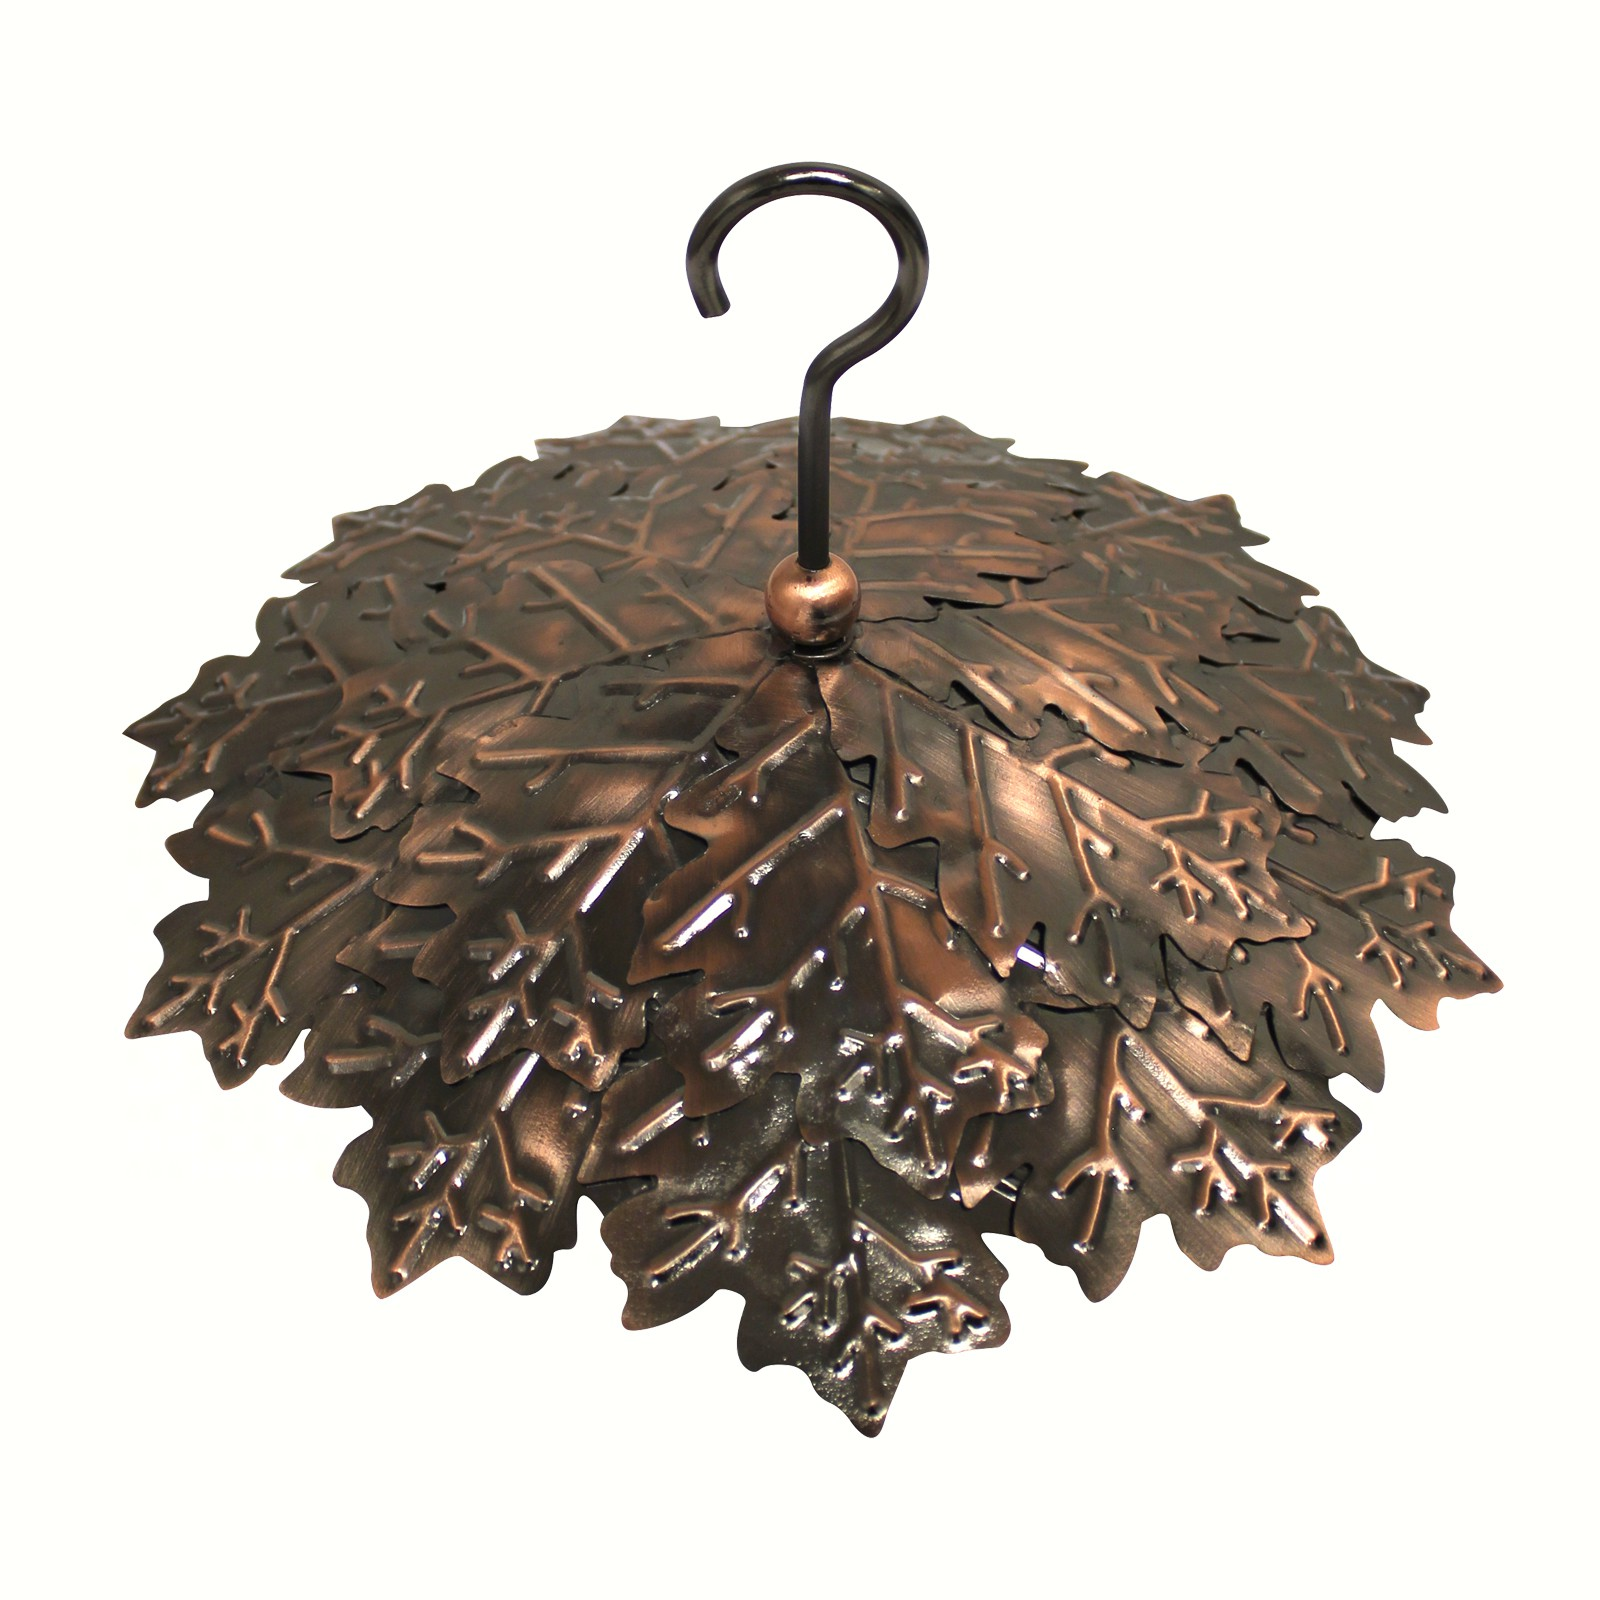 Copper Leaf 10 inch Rain Guard